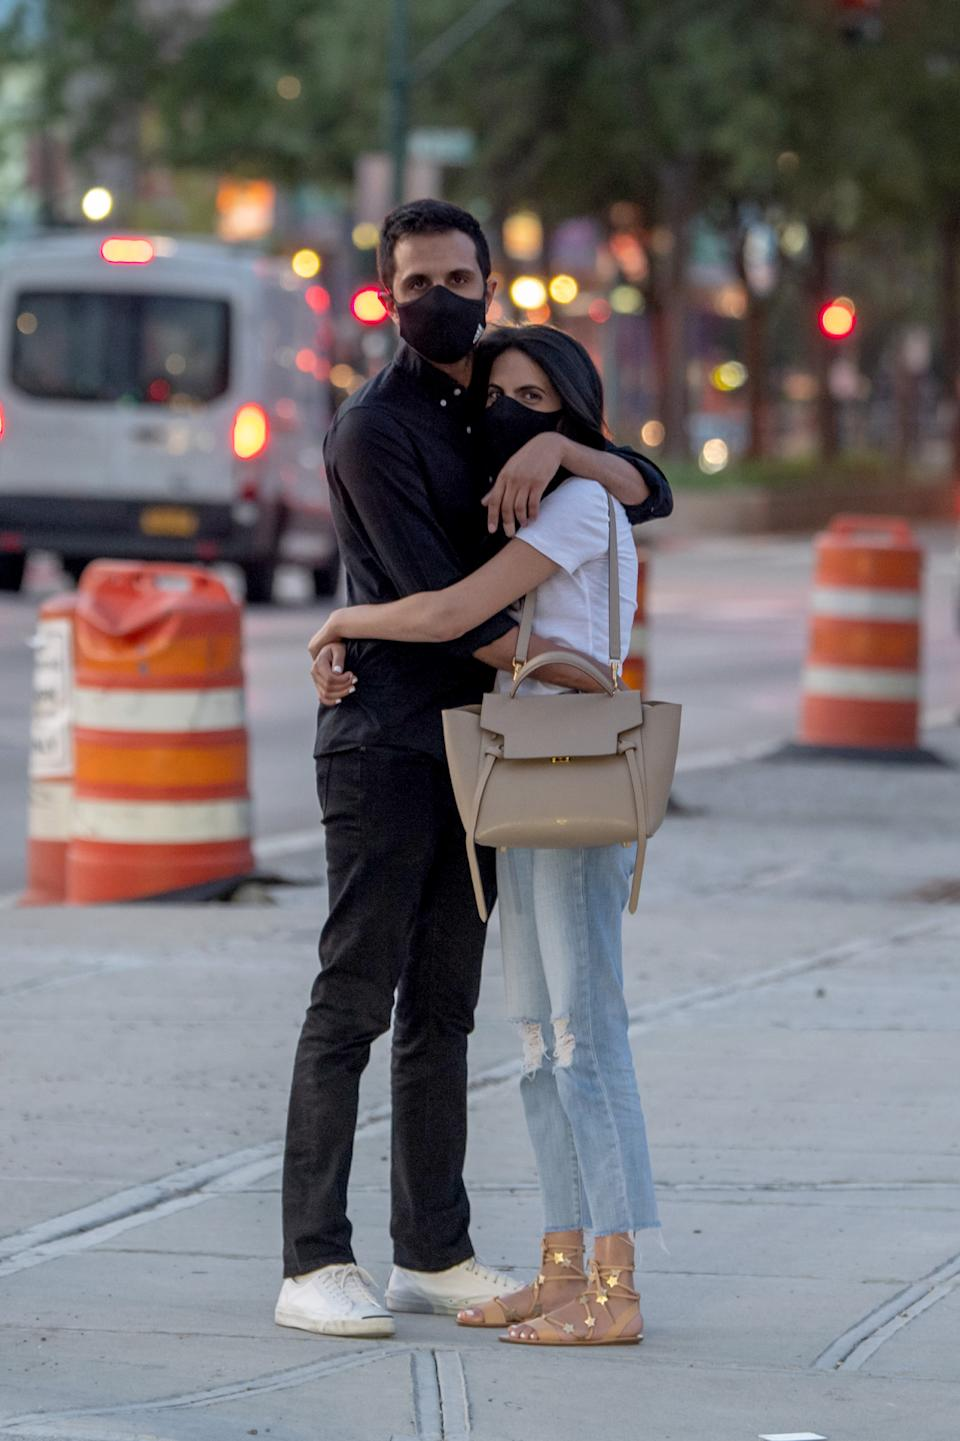 NEW YORK, NEW YORK - JULY 21: A couple wearing masks are seen hugging on the sidewalk as the city enters Phase 4 of re-opening following restrictions imposed to slow the spread of coronavirus on July 21, 2020 in New York City. The fourth phase allows outdoor arts and entertainment, sporting events without fans and media production. (Photo by Alexi Rosenfeld/Getty Images)